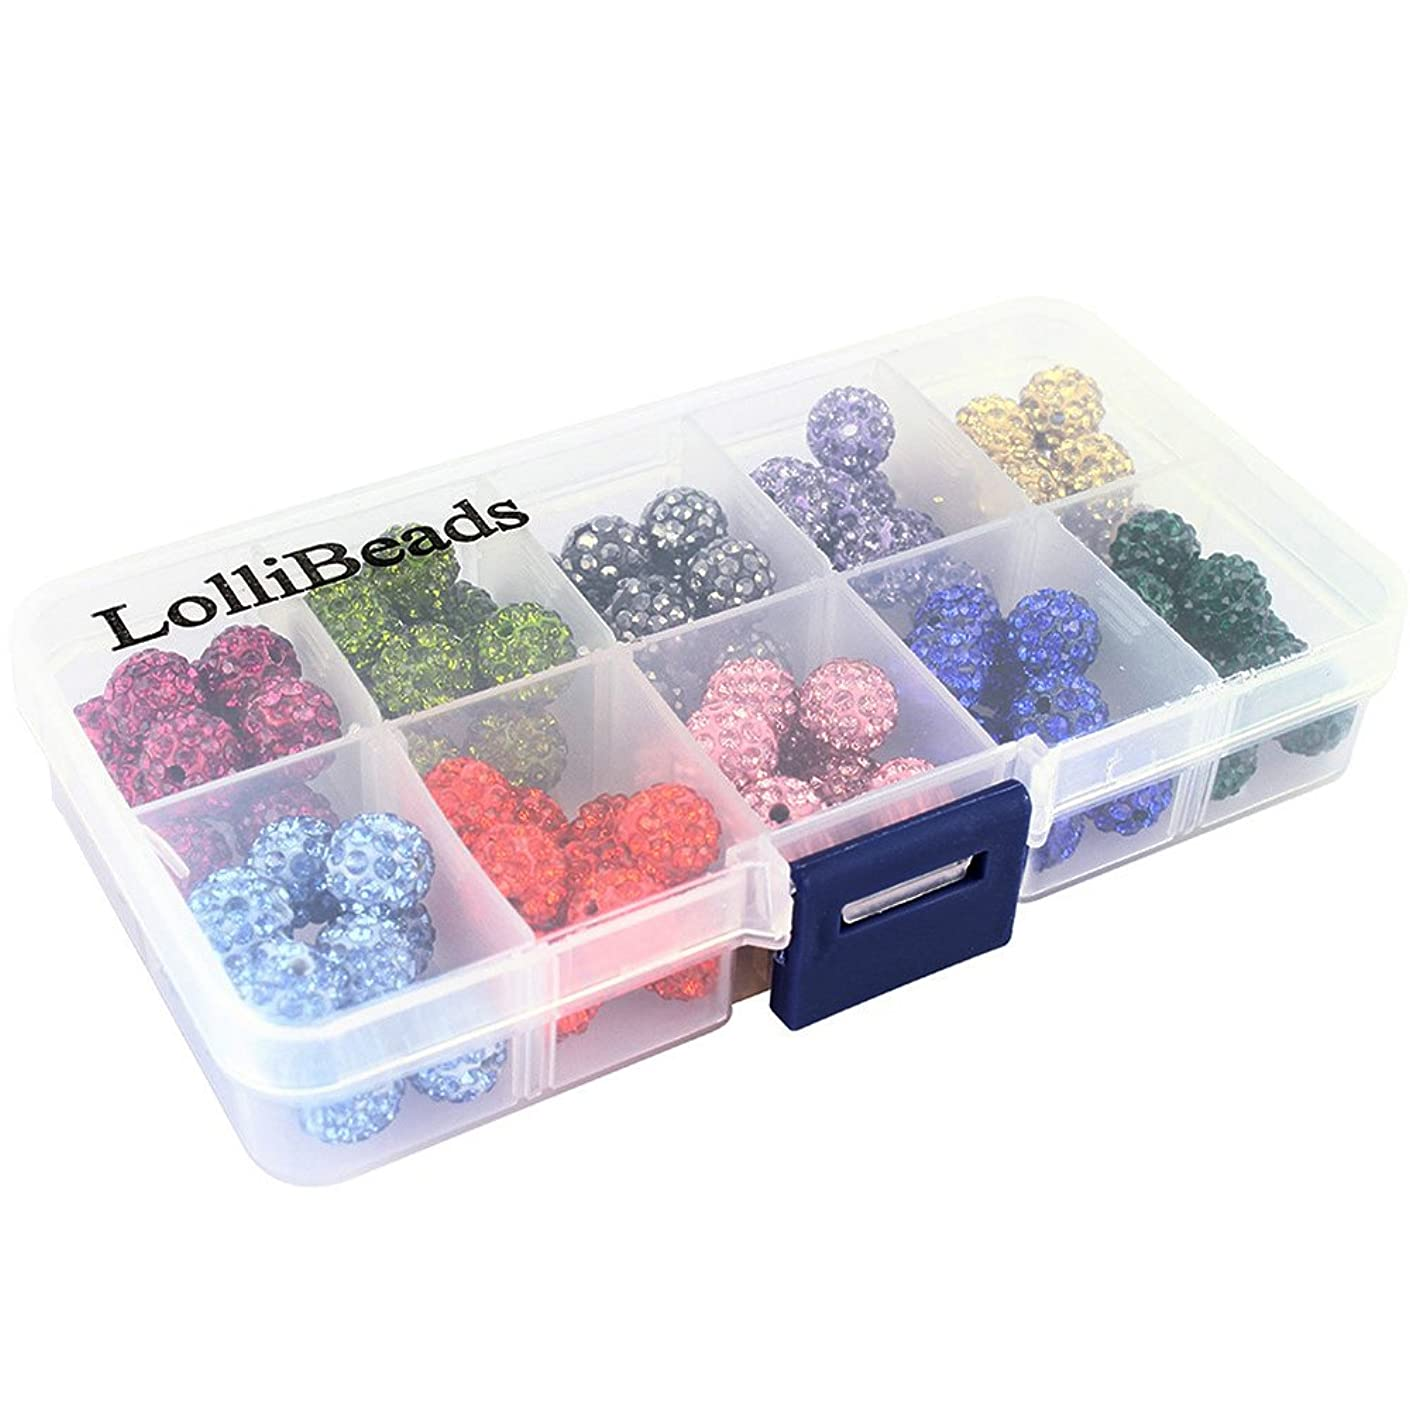 LolliBeads-100pcs 10 Color Mix Lot Top Quality Crystal Rhinestones Pave Clay Spacer Ball Beads (10mm Box Set)